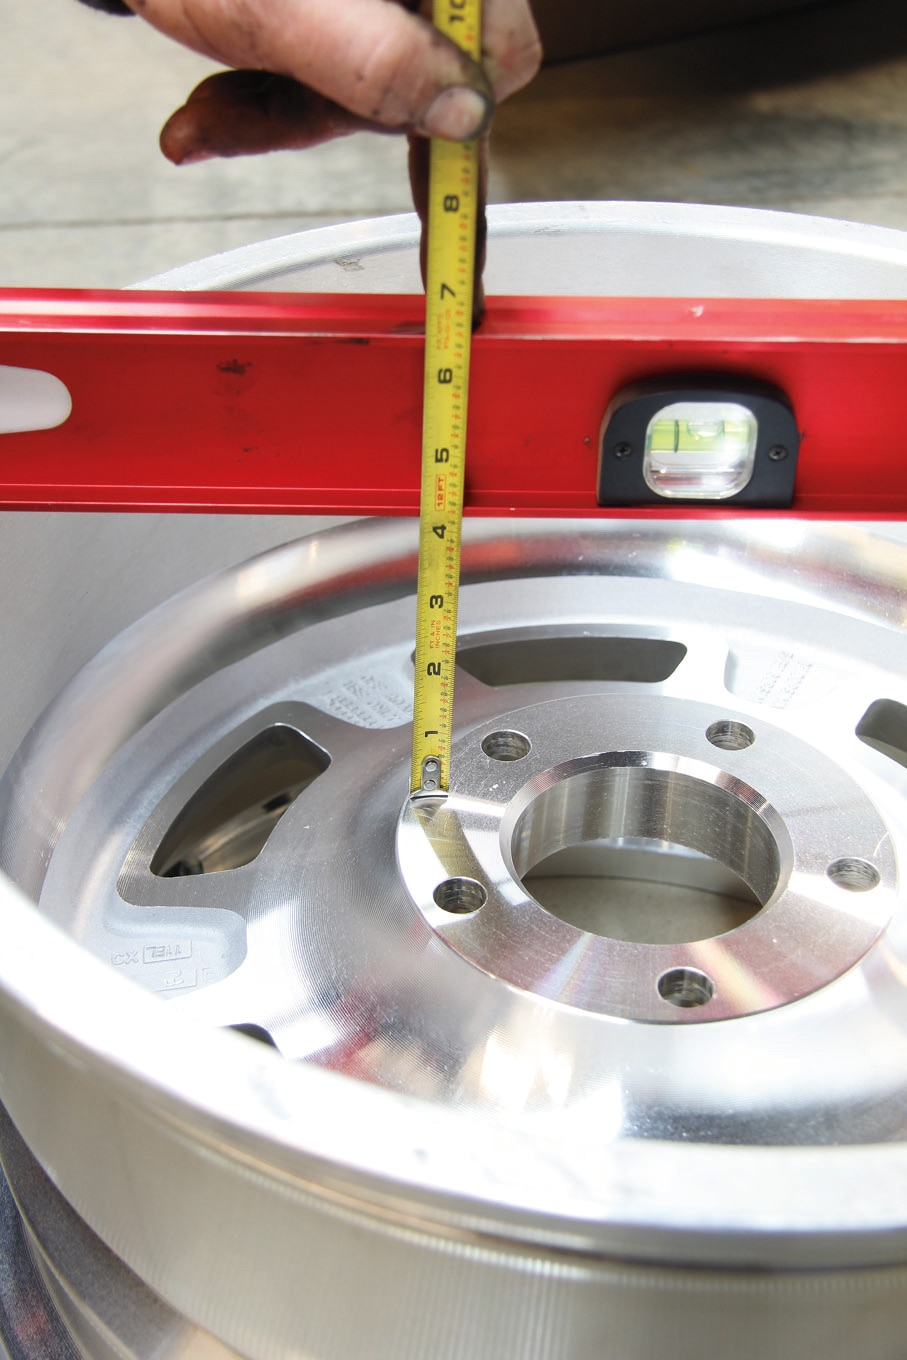 Measuring backspacing is pretty easy. Place a straightedge across the outside surface of the inboard rim, and use a ruler to measure the distance from the hub mating surface on the back of the wheel (shown here) to your straightedge.